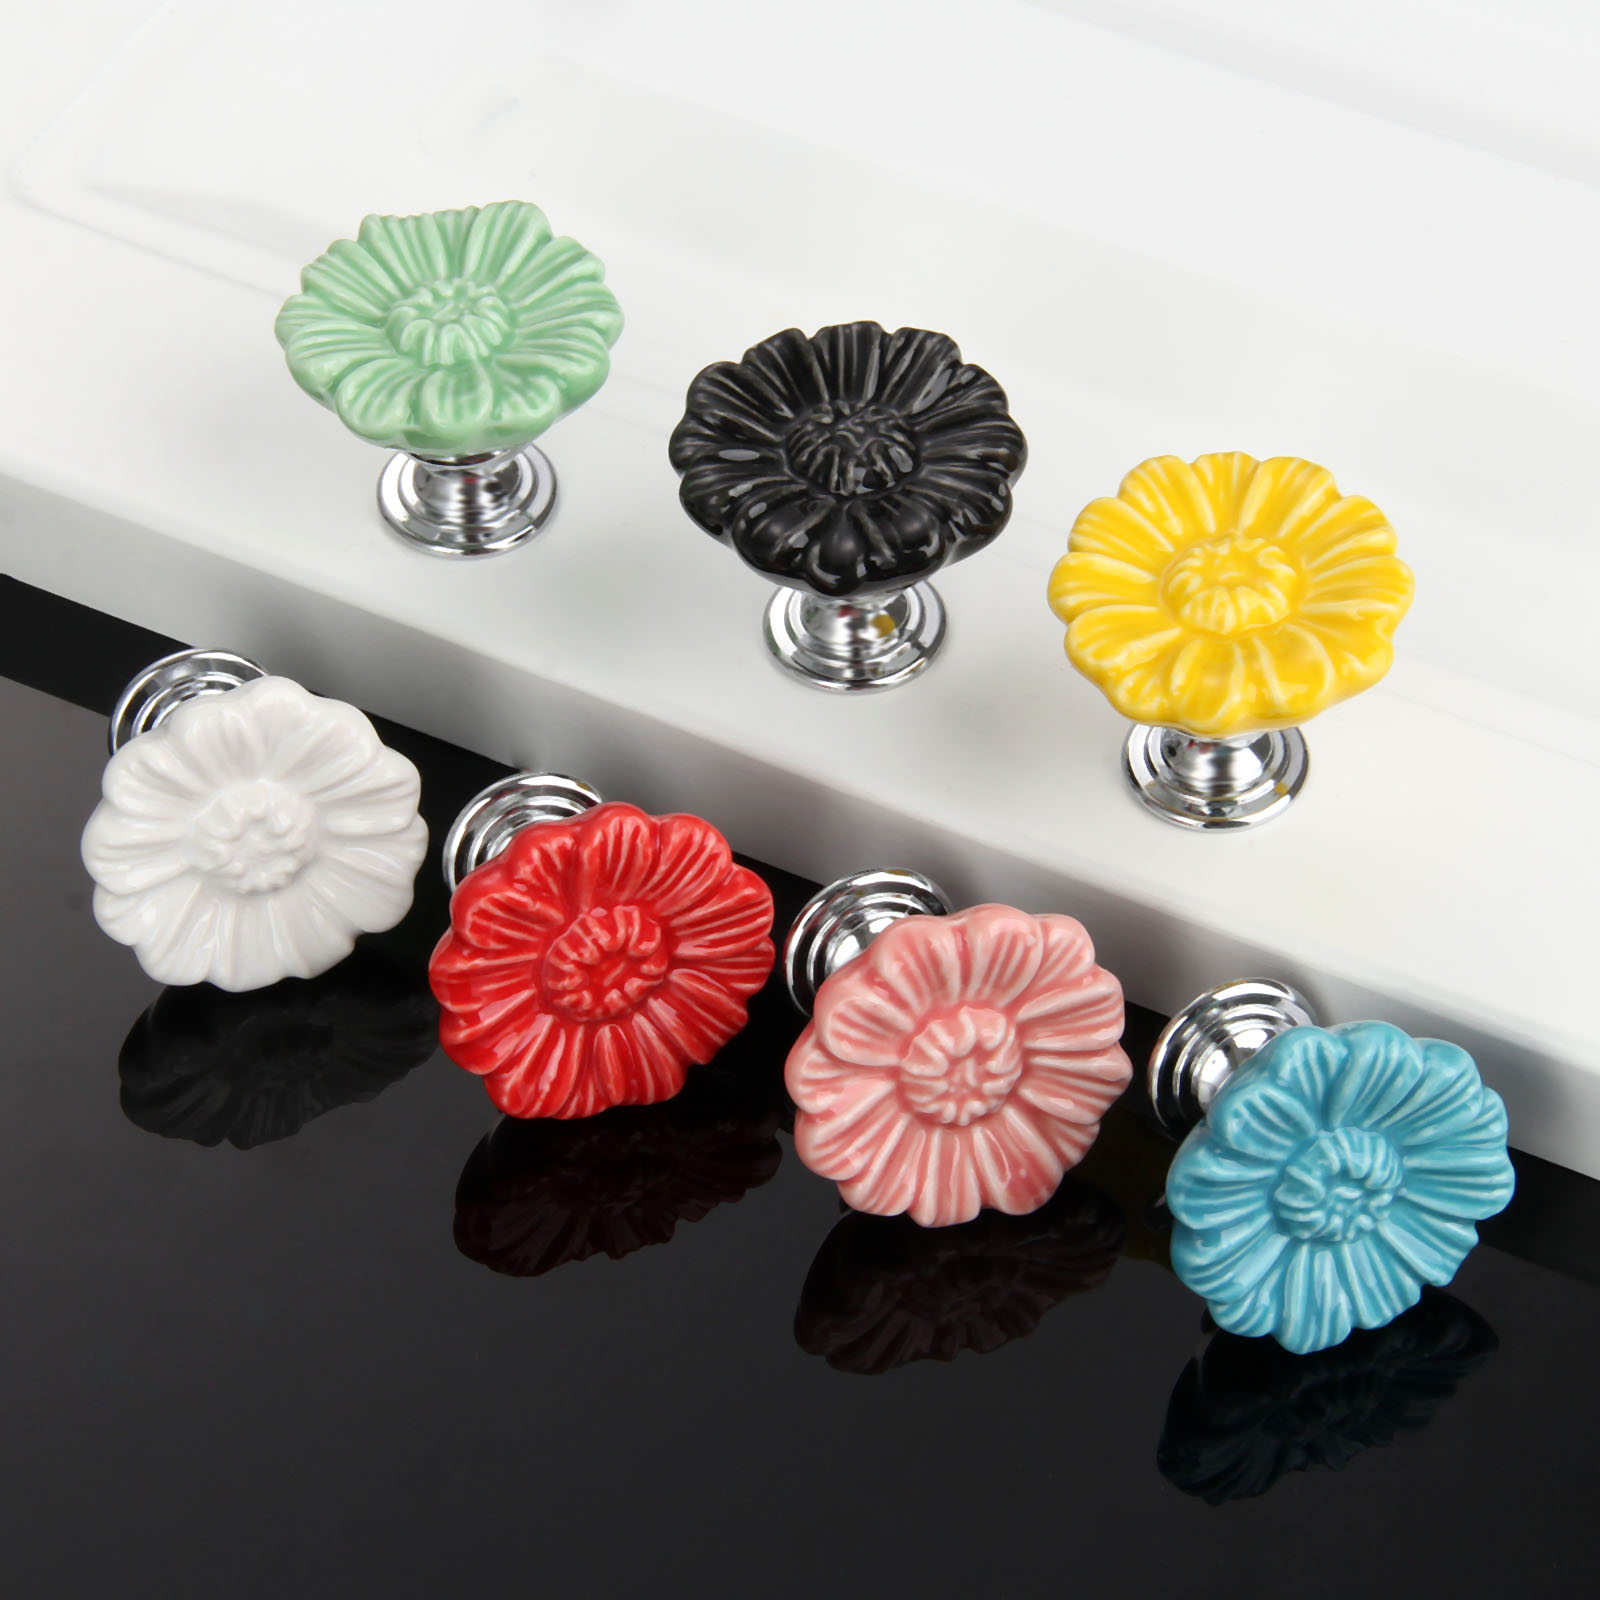 купить 7Pcs/lot Furniture Handles Vintage Flower Cabinet Knobs and Handles Ceramic Door Knob Cupboard Drawer Kitchen Pull Handle онлайн